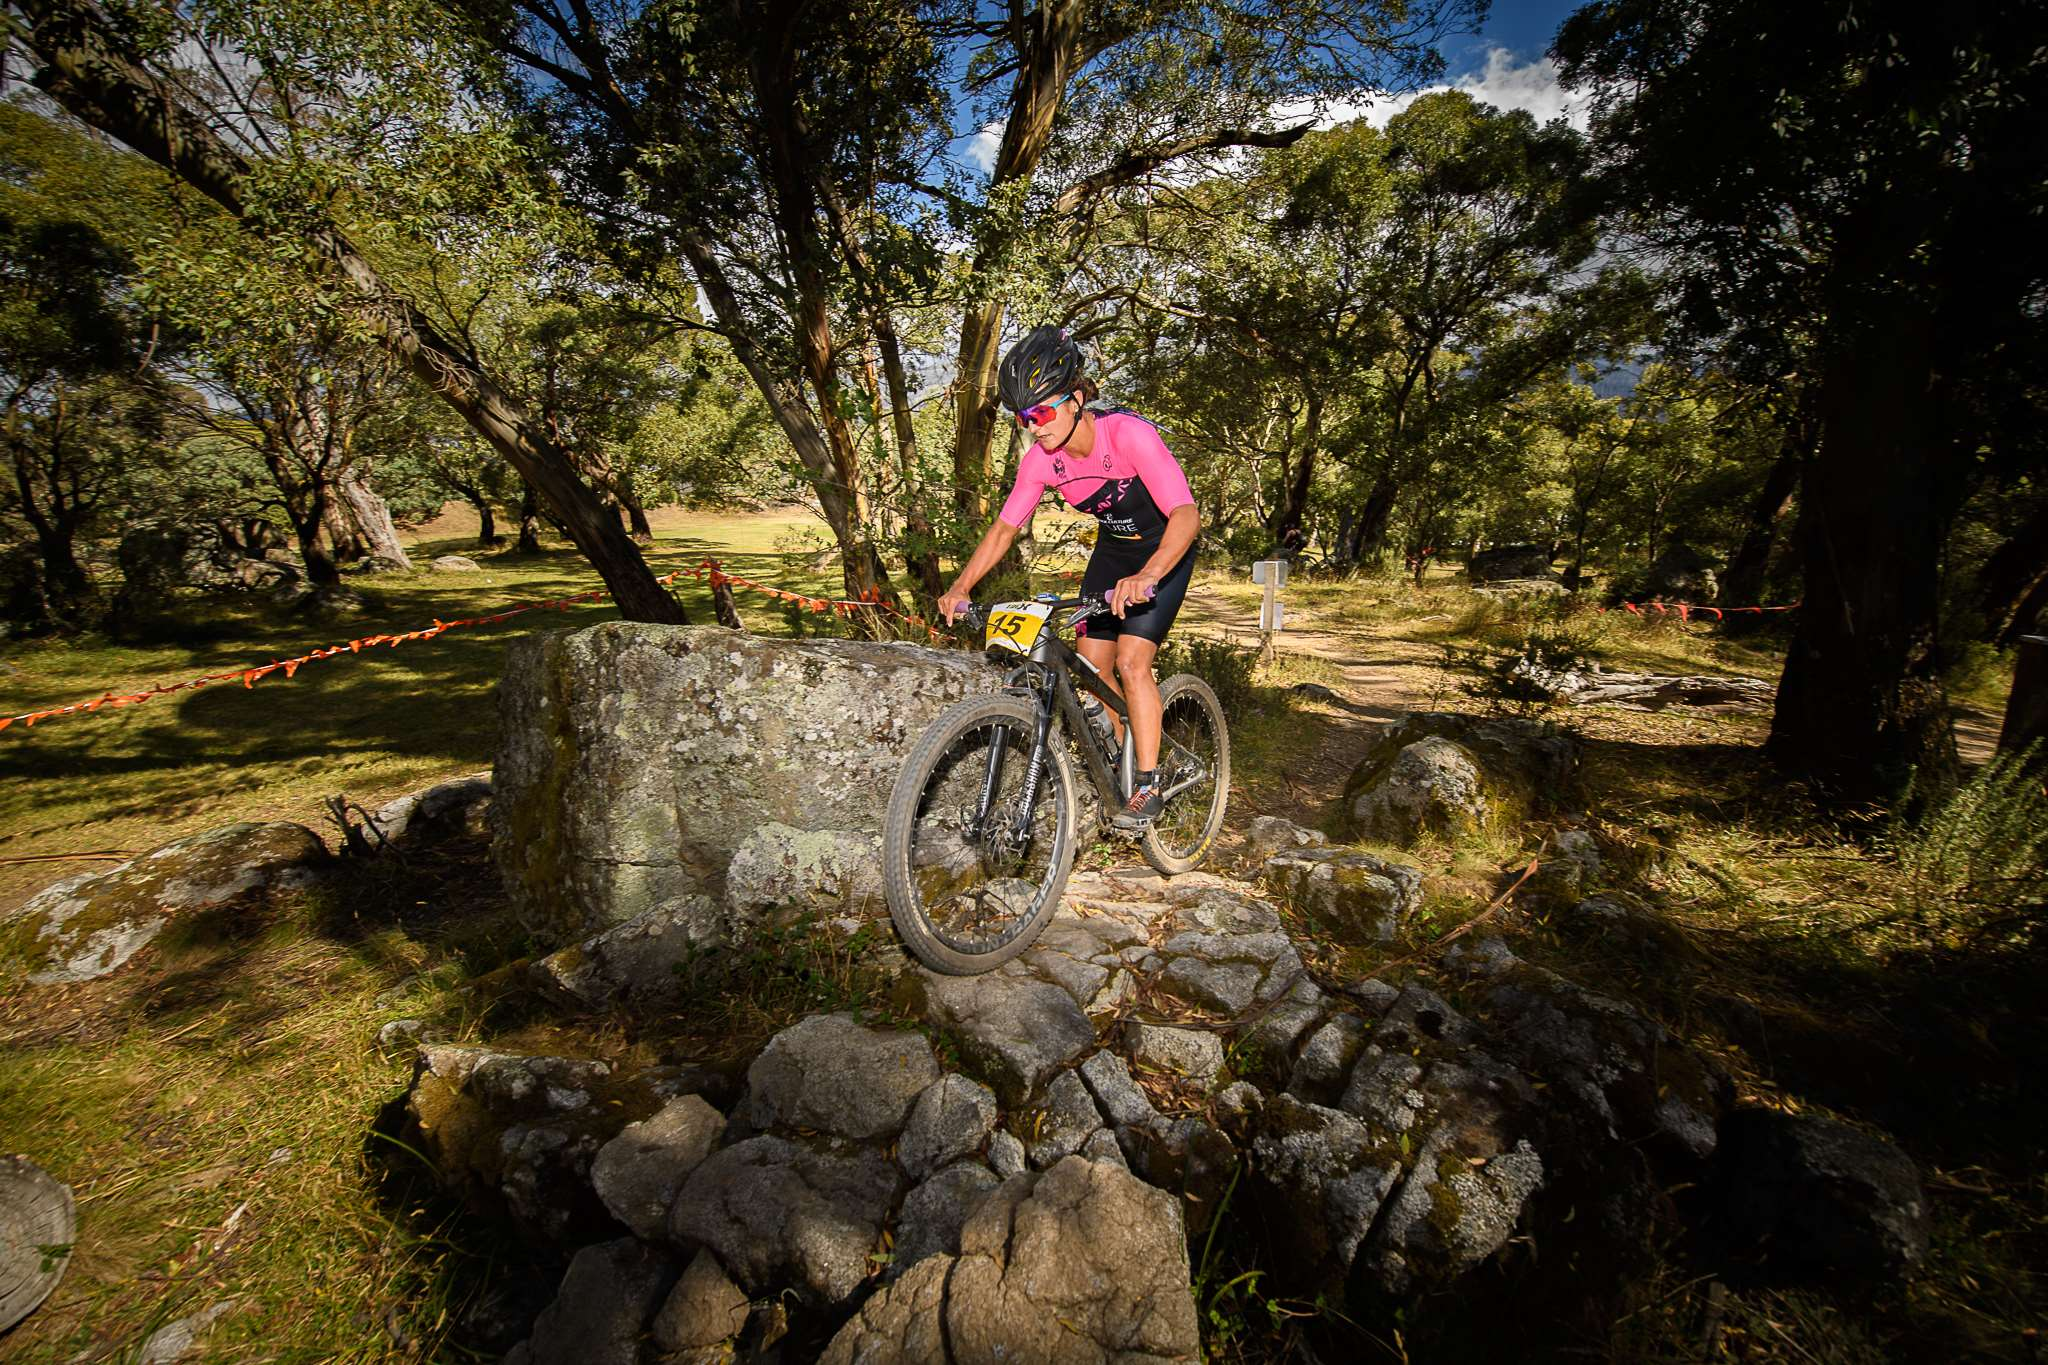 Penny Slater on her mountain bike on the 2018 Cross Triathlon